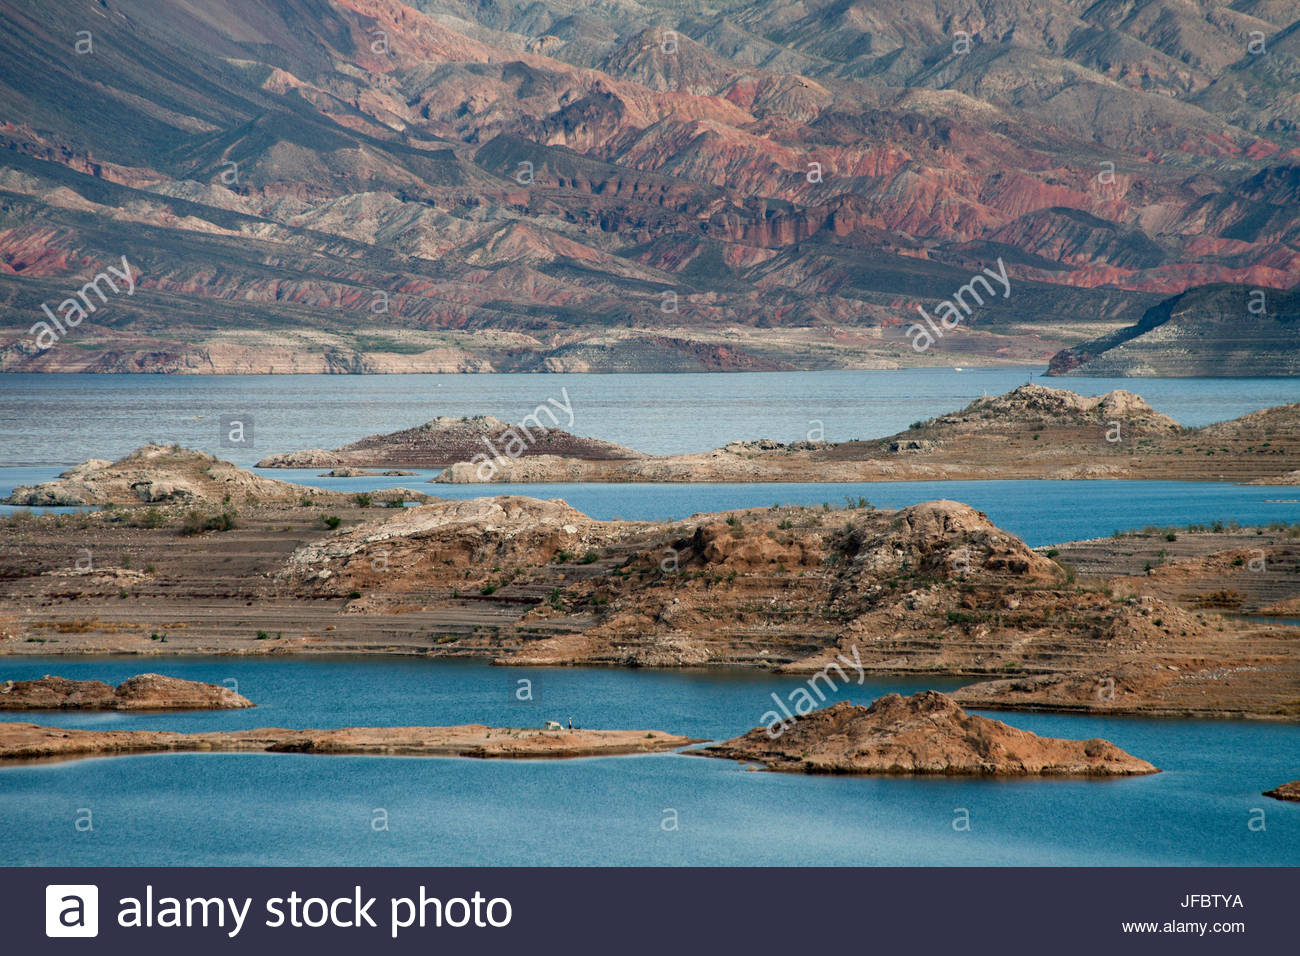 View of the lake's western end in Lake Mead National Recreation Area, Nevada. Stock Photo